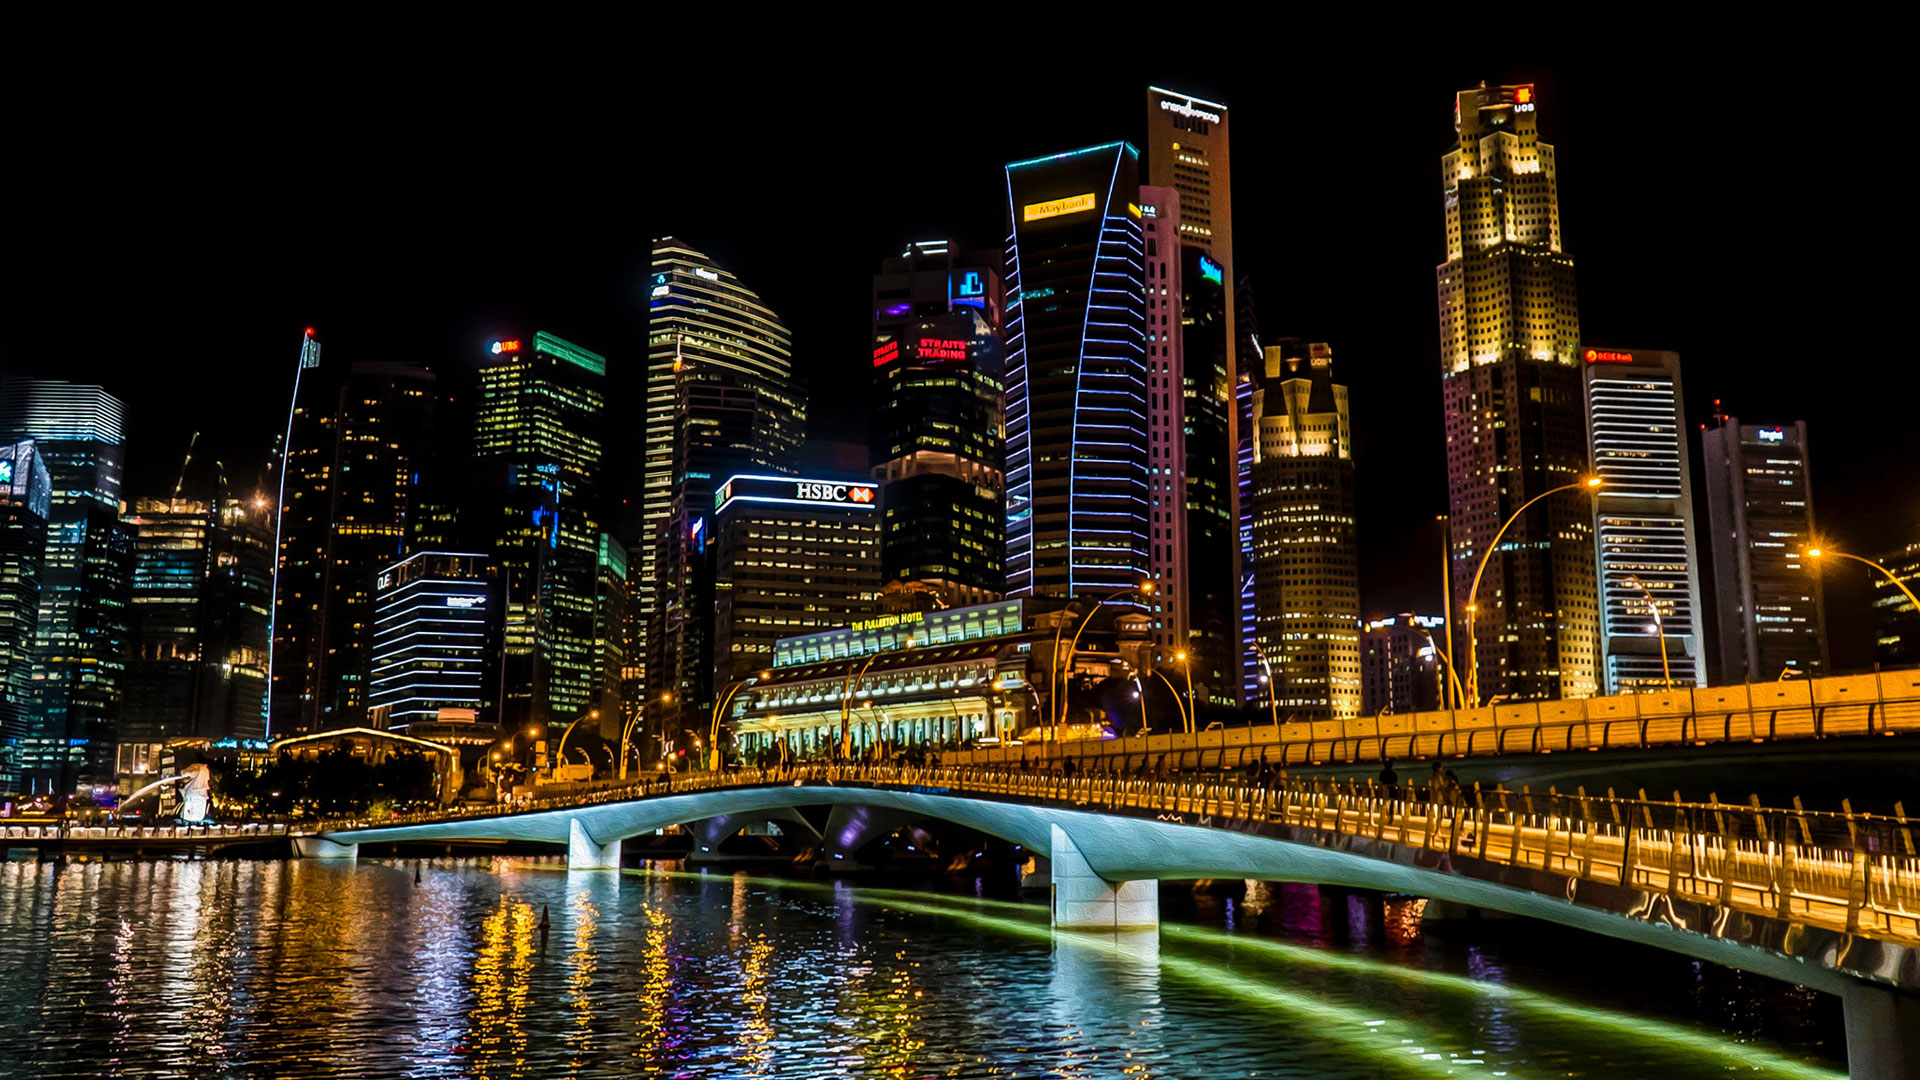 City lighting is a major contributor to carbon emissions